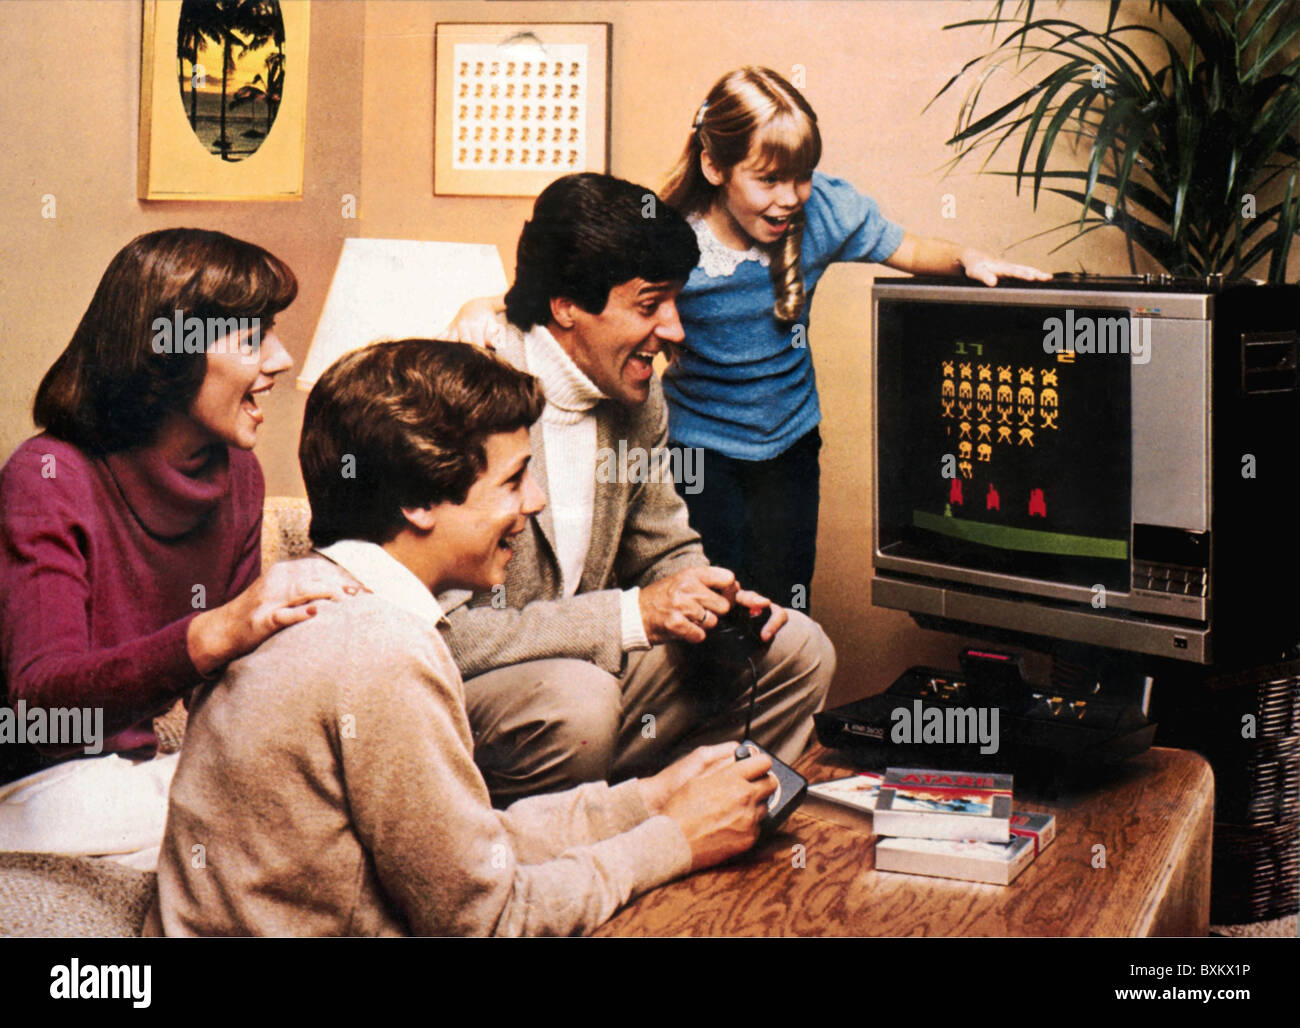 """games, video games, Atari 2600 Video Computer System, early video game, family with paddle playing """"Space Invaders"""", Stock Photo"""